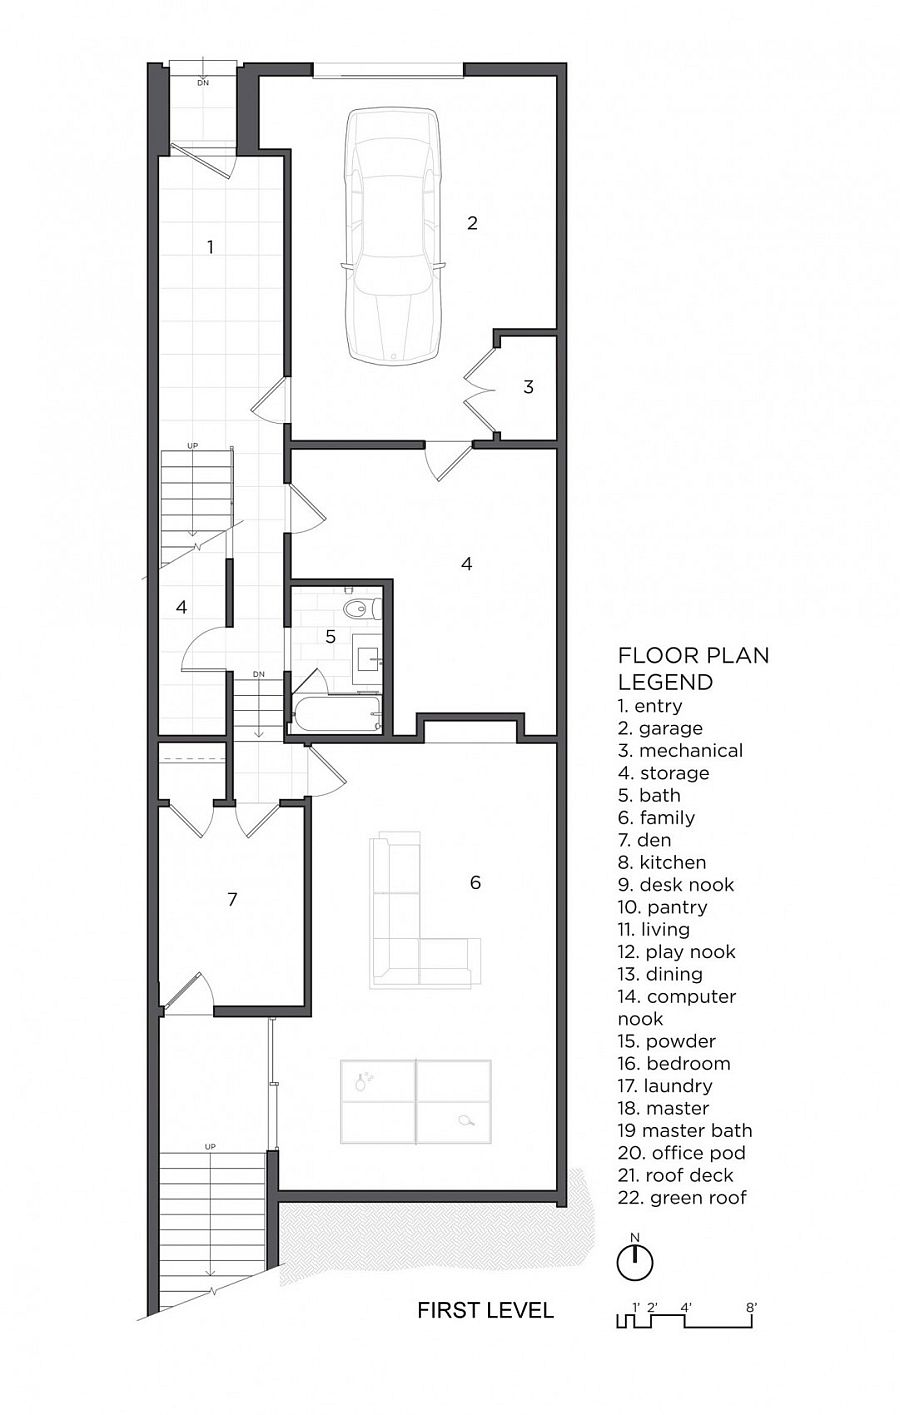 Floor plan of the first level of Fifty wun